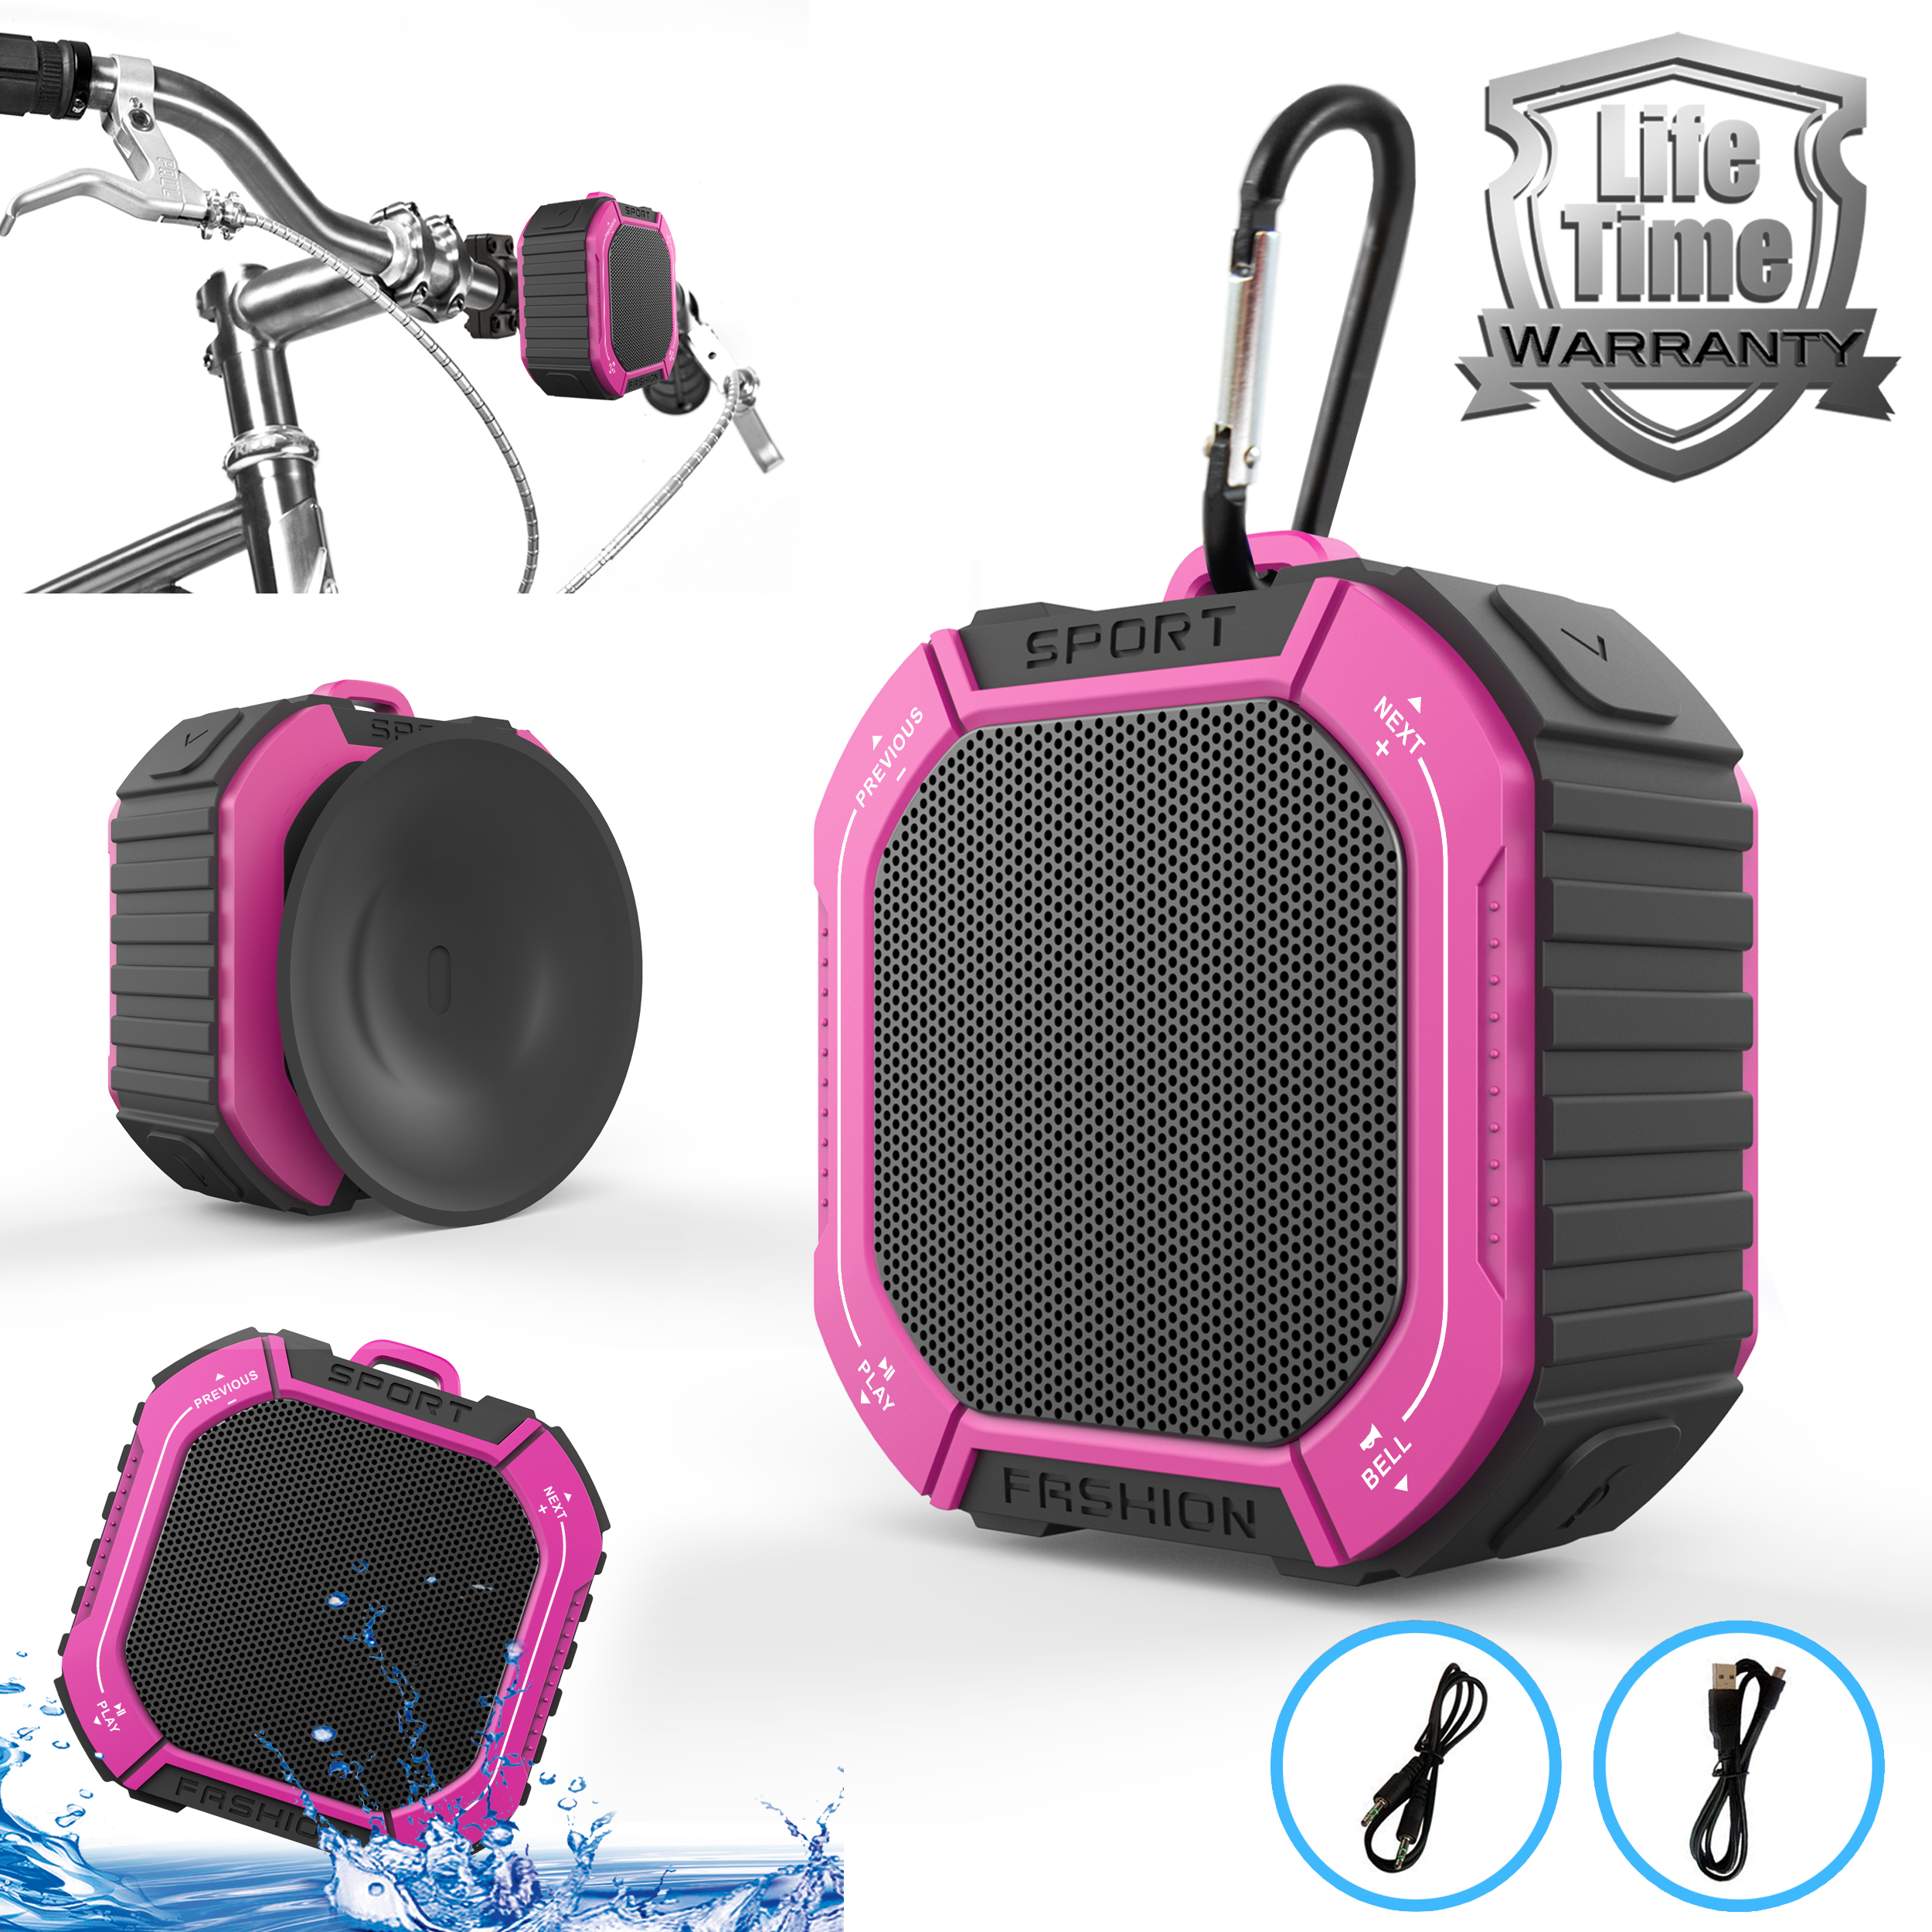 INNOVAA Sport Outdoor & Shower Bluetooth 4.0 Speaker With Bass and HD Sound